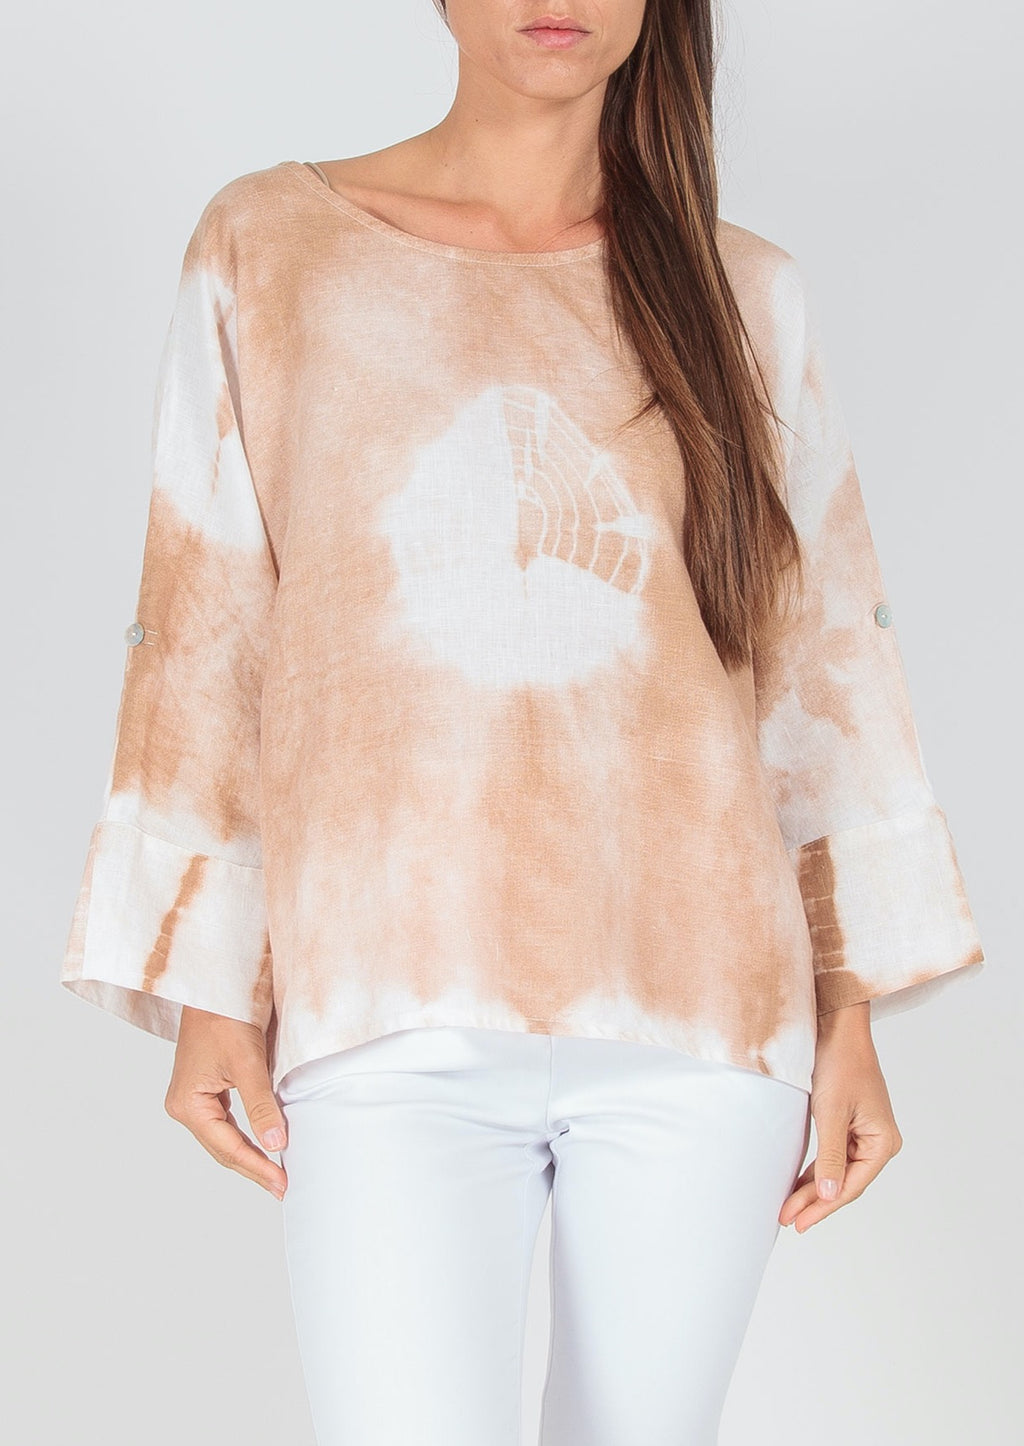 Everything to Me Top - Beige, by Ridley the Label  This modern 100% Linen Top features a unique tie dye effect in subtle beige and white to pair back beautifully with your white pants and jeans, and light denims.  Features:  Relaxed fit  Scoop neck  7/8th sleeves with button tab so it can be rolled and worn as a short sleeve  Rounded hemline  Made in Italy